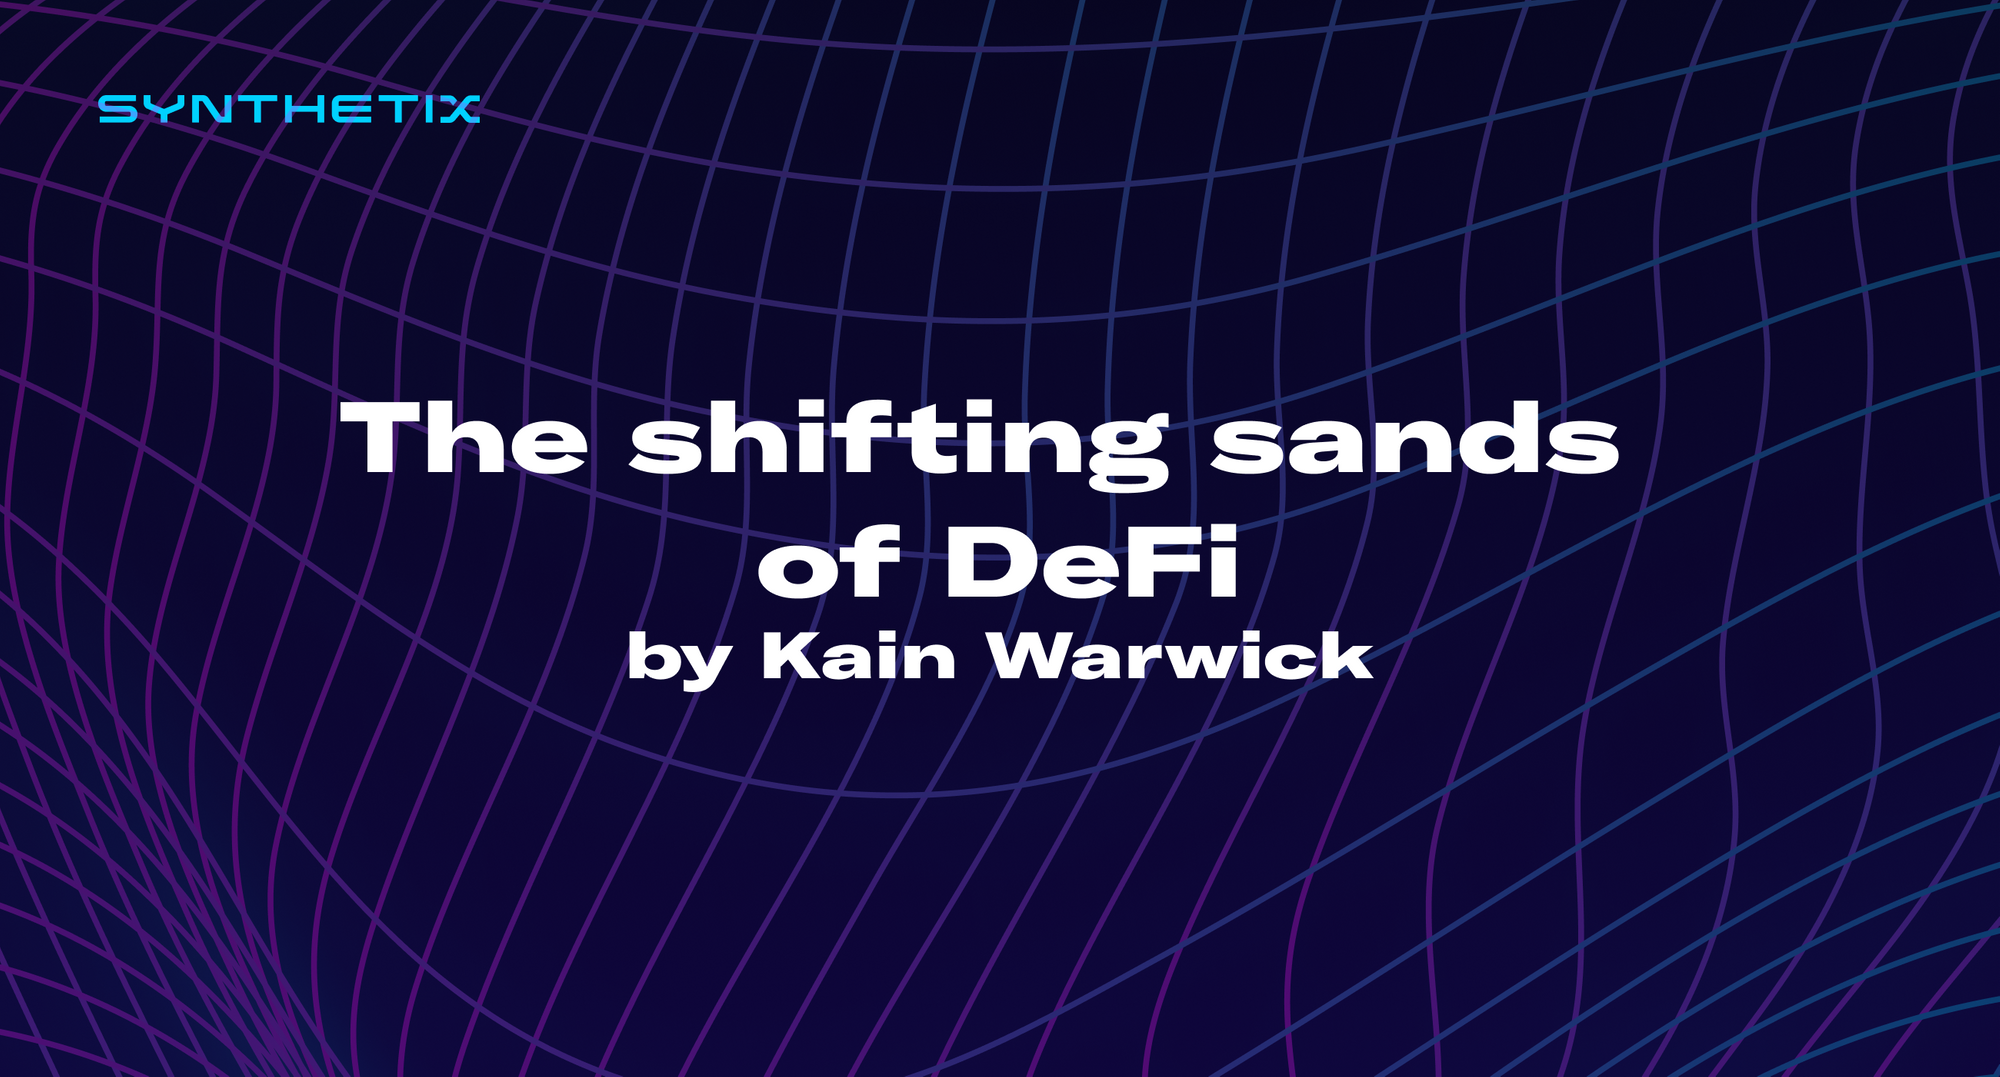 The shifting sands of DeFi